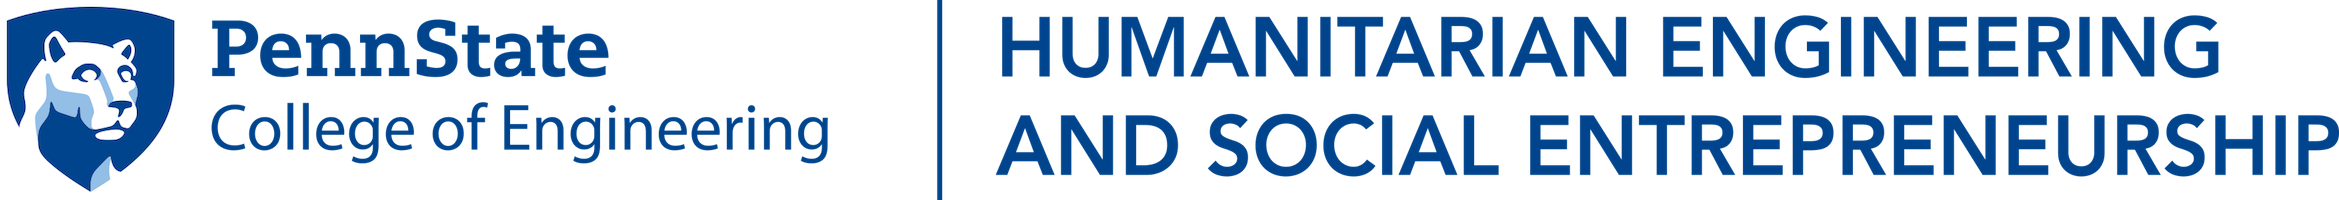 Humanitarian Engineering & Social Entrepreneurship (HESE) Program